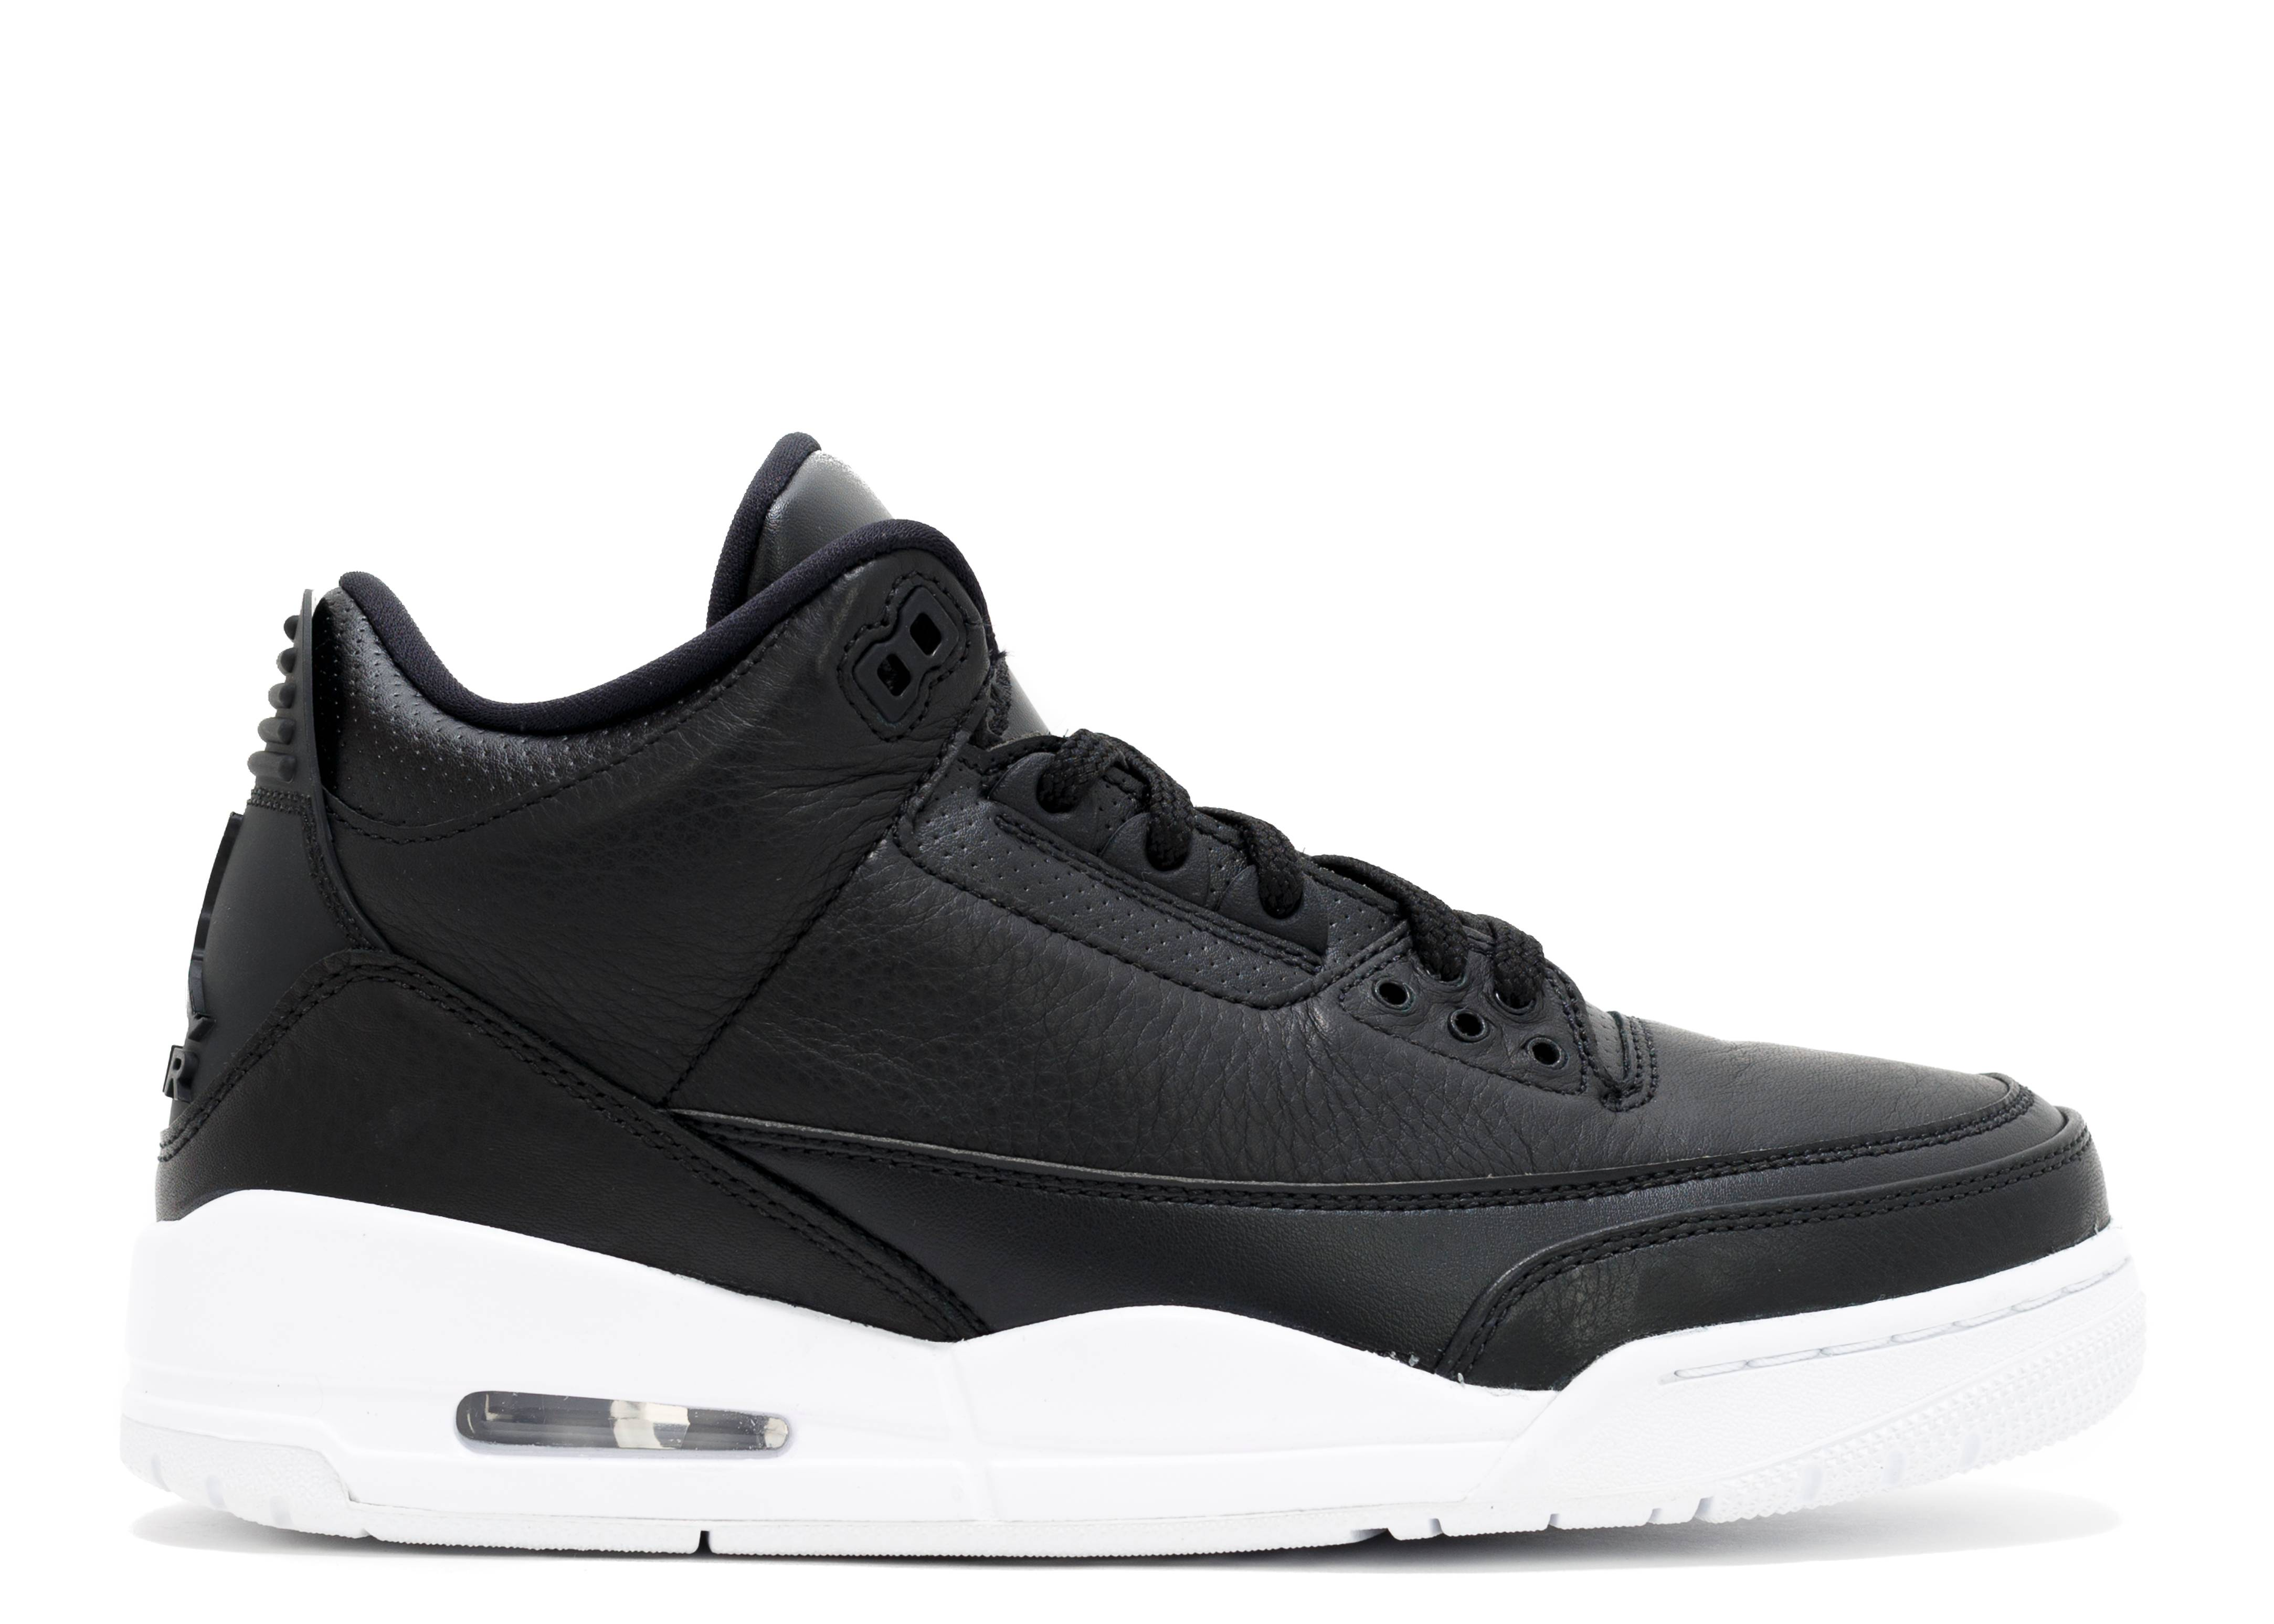 New Air Jordan 3 Retro Cyber Monday